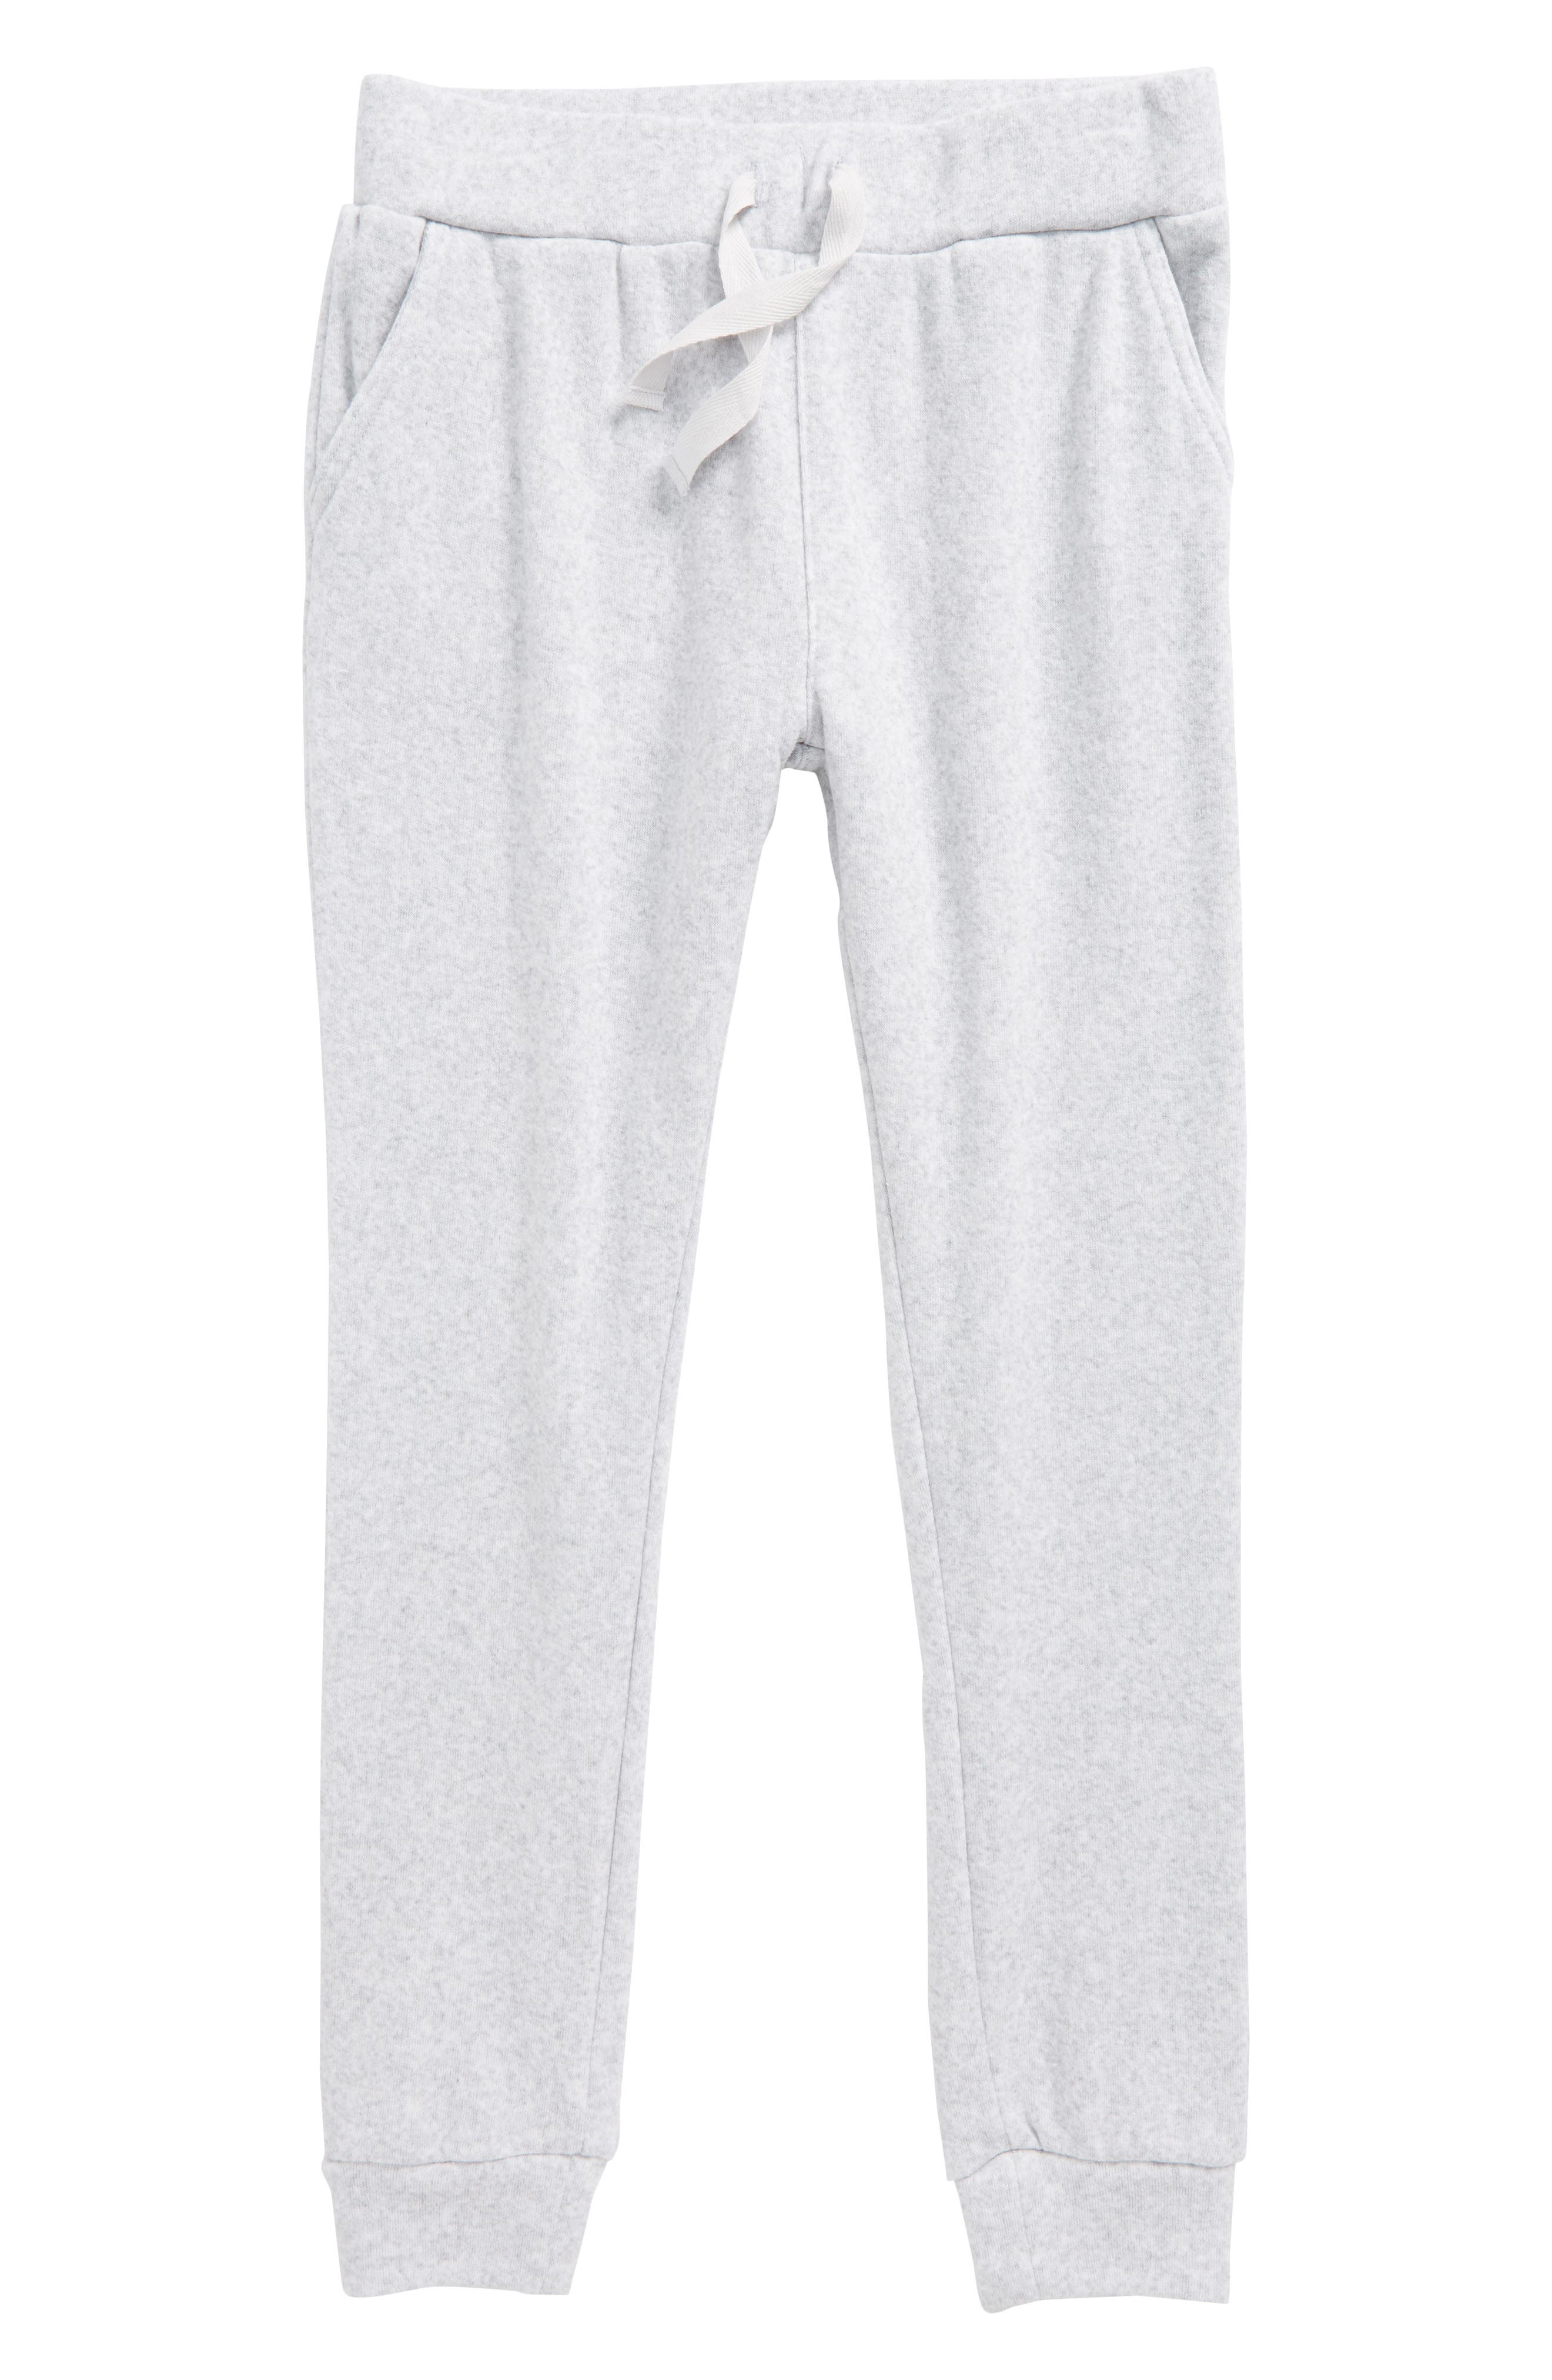 French Terry Jogger Pants,                         Main,                         color, 050